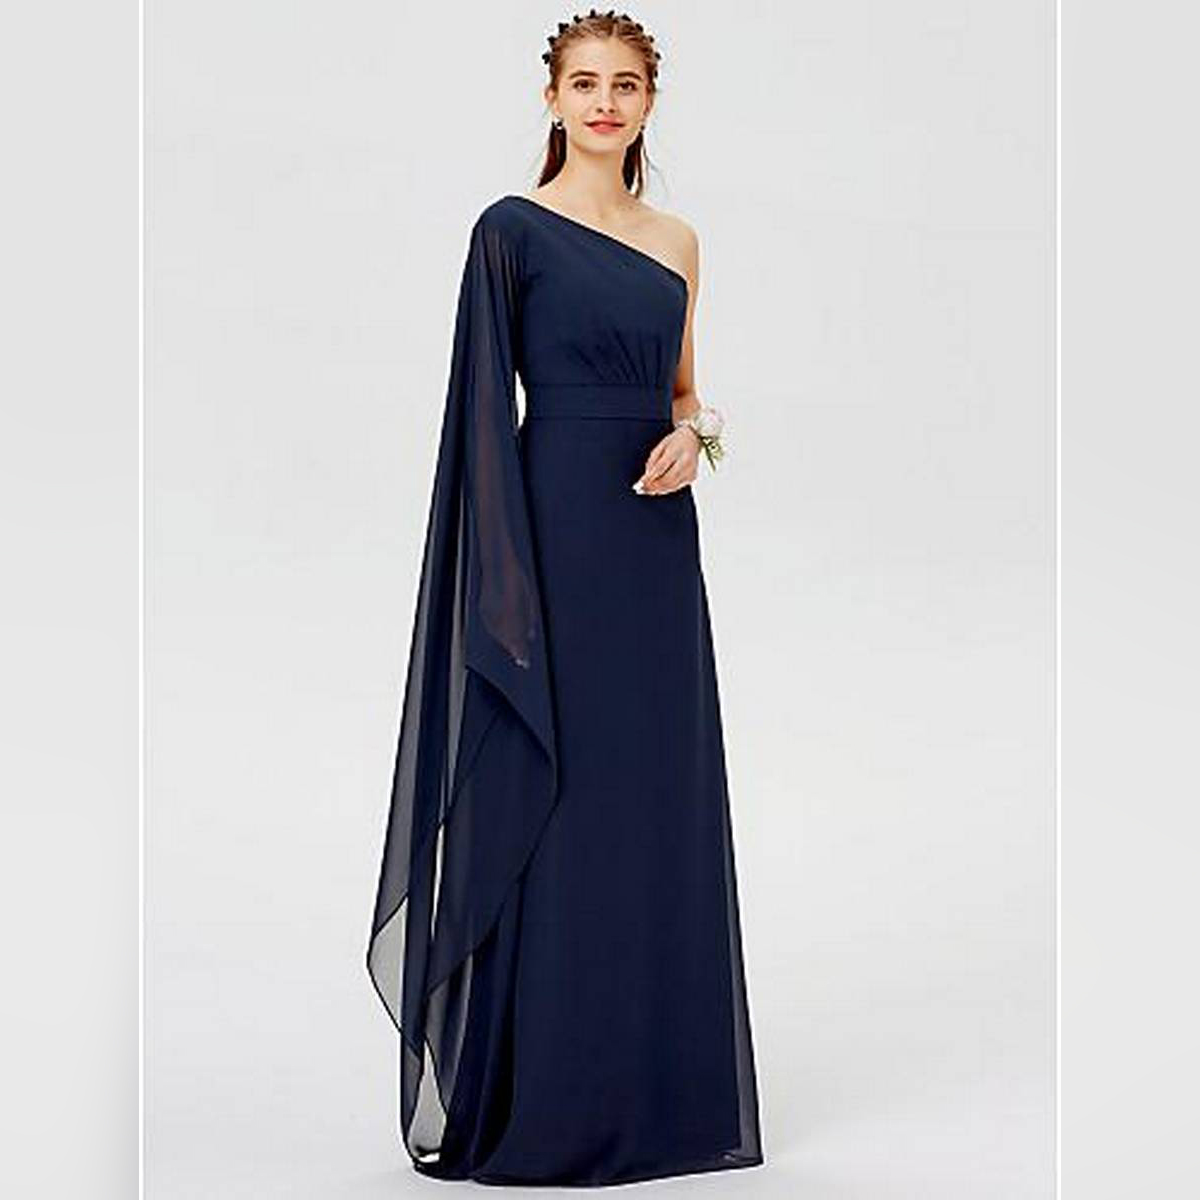 DESIGNER A-Line / Ball Gown One Shoulder Floor Length Chiffon Bridesmaid Dress with Sash / Ribbon / Pleats Party Wear Casual Wear Dress For Women For Girls